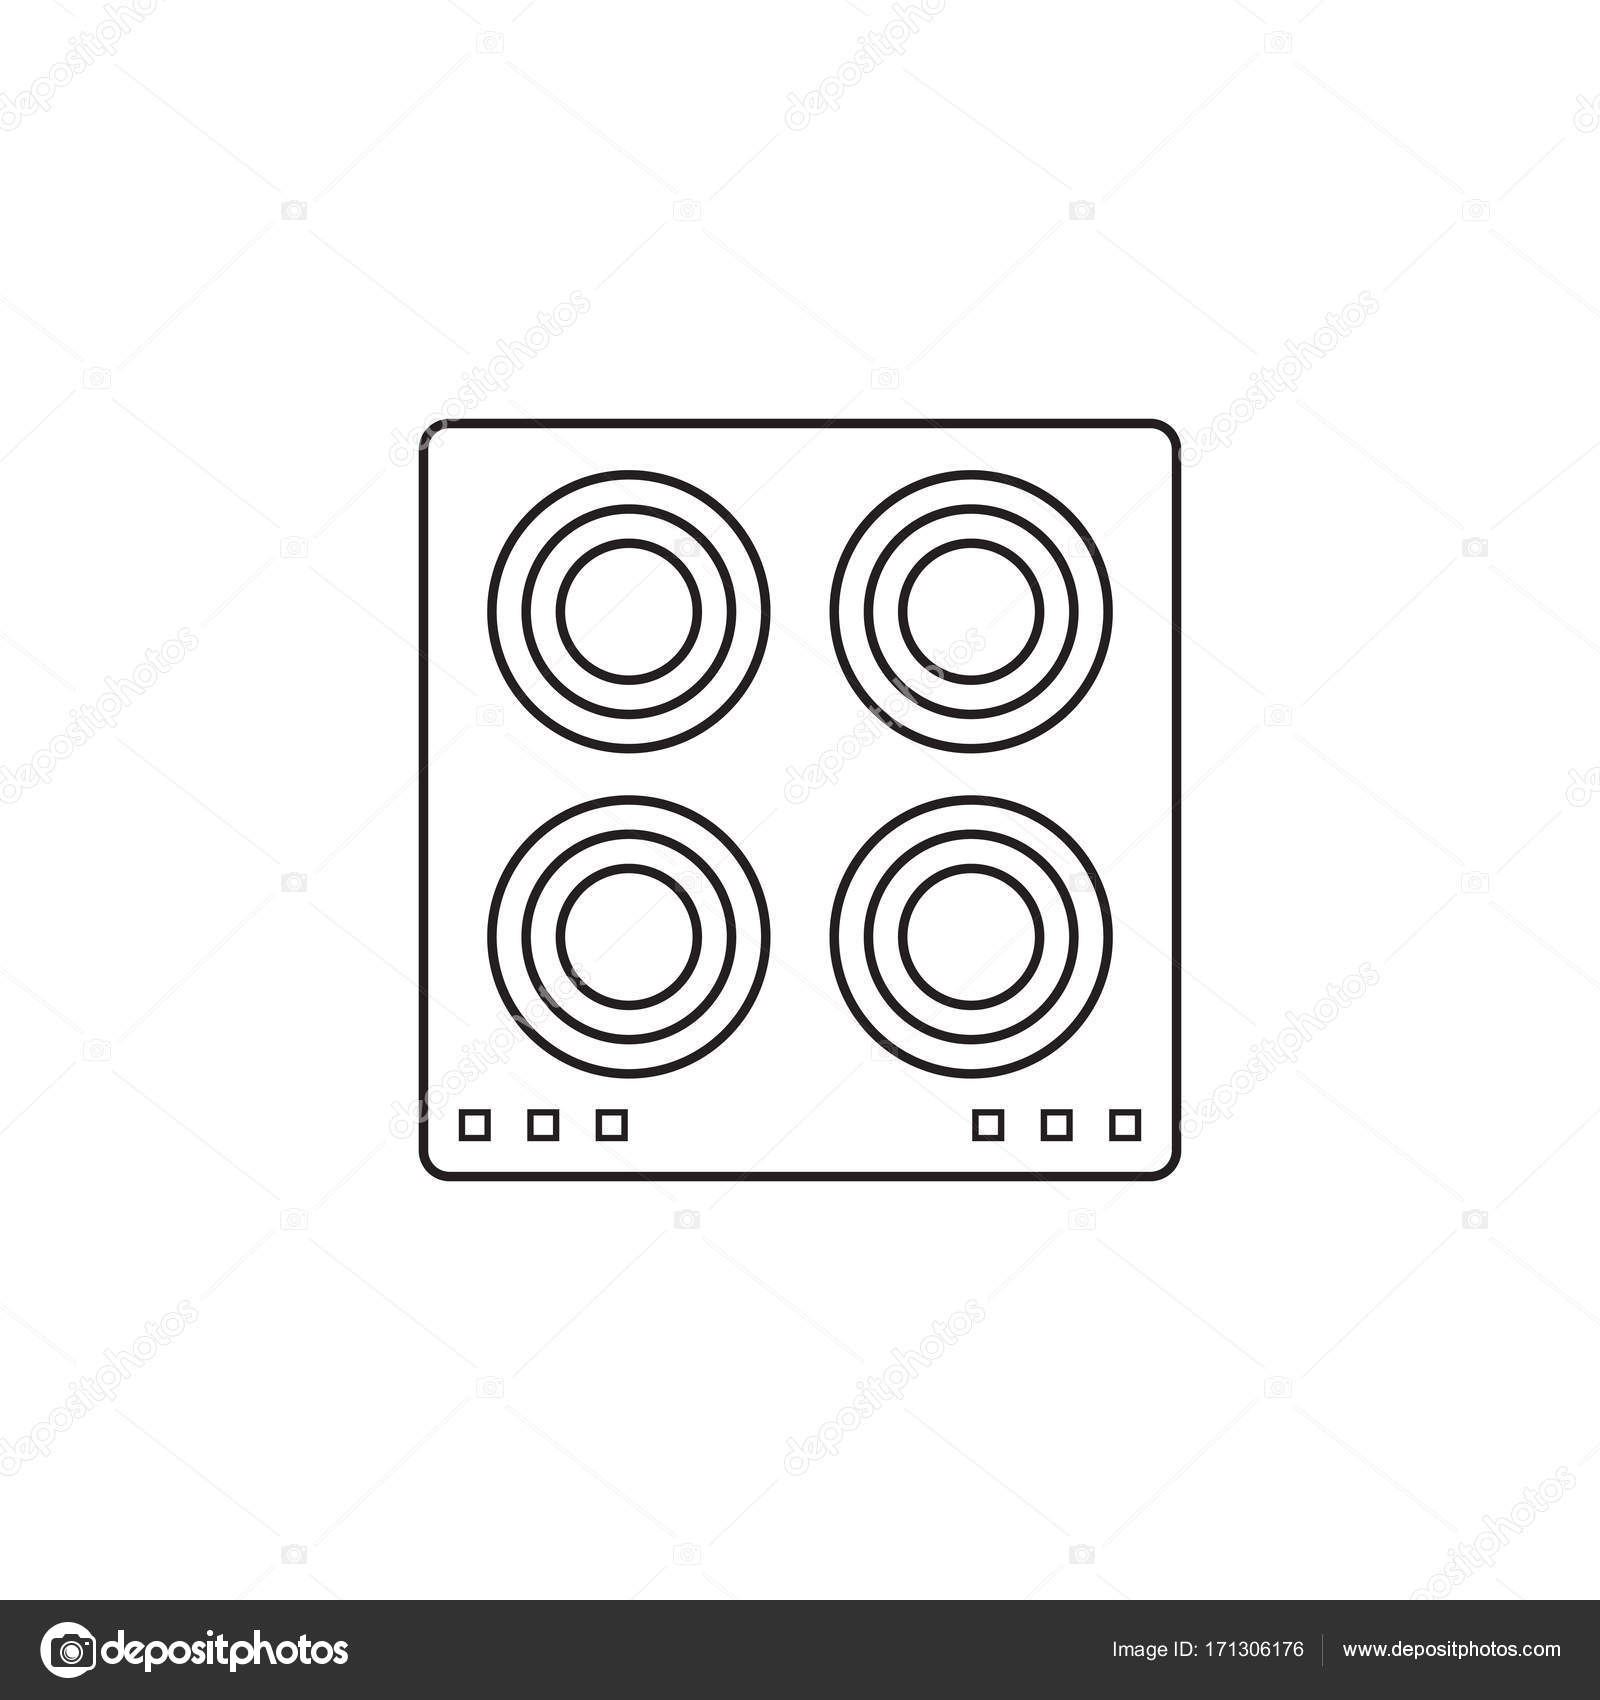 Electric hot plate icon, cooking panel — Stock Vector